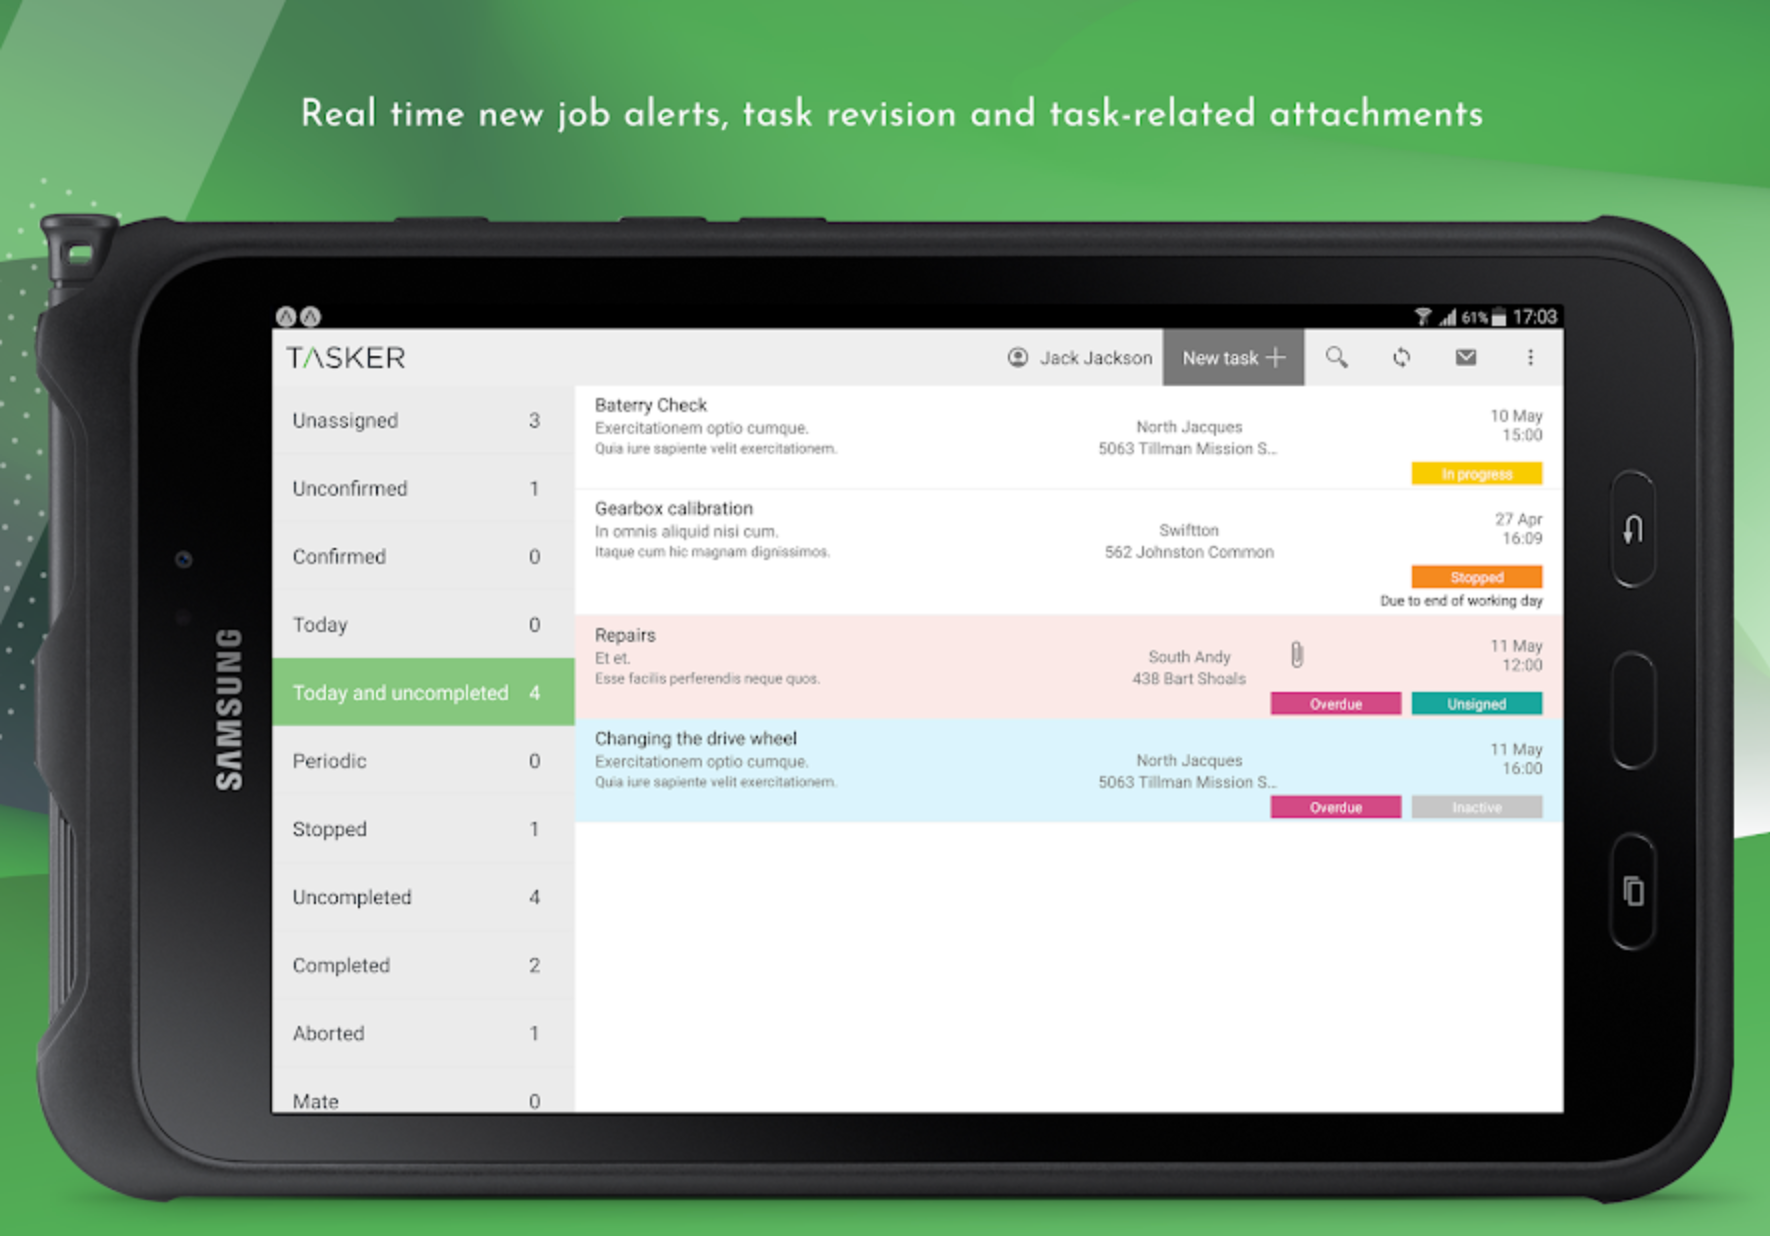 Get new job alerts in real time, as well as task revision and task-related attachments